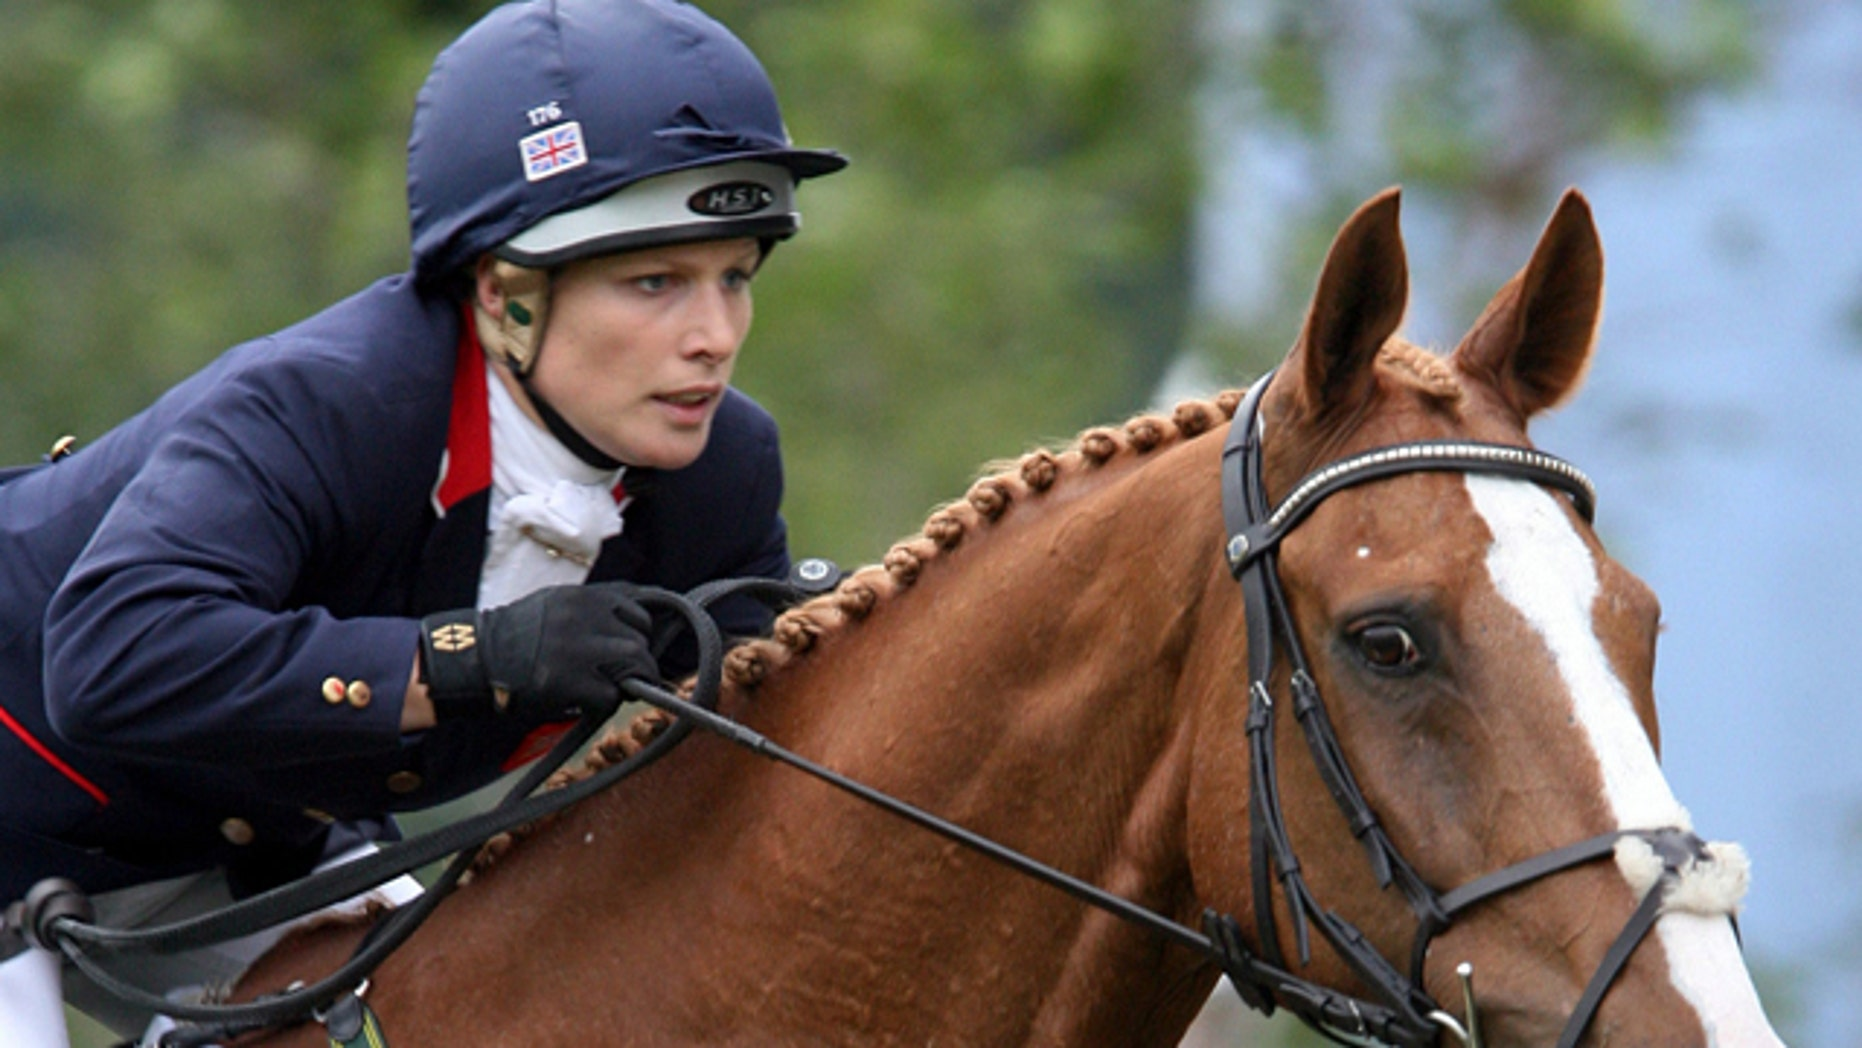 """July 6, 2007: This file photo shows Britain's Zara Phillips, a granddaughter of Queen Elizabeth II, riding """"Toytown""""  in the jumping test competition of the Event Competitions at the World Equestrian Festival CHIO Aachen 2007 in Aachen, western Germany."""